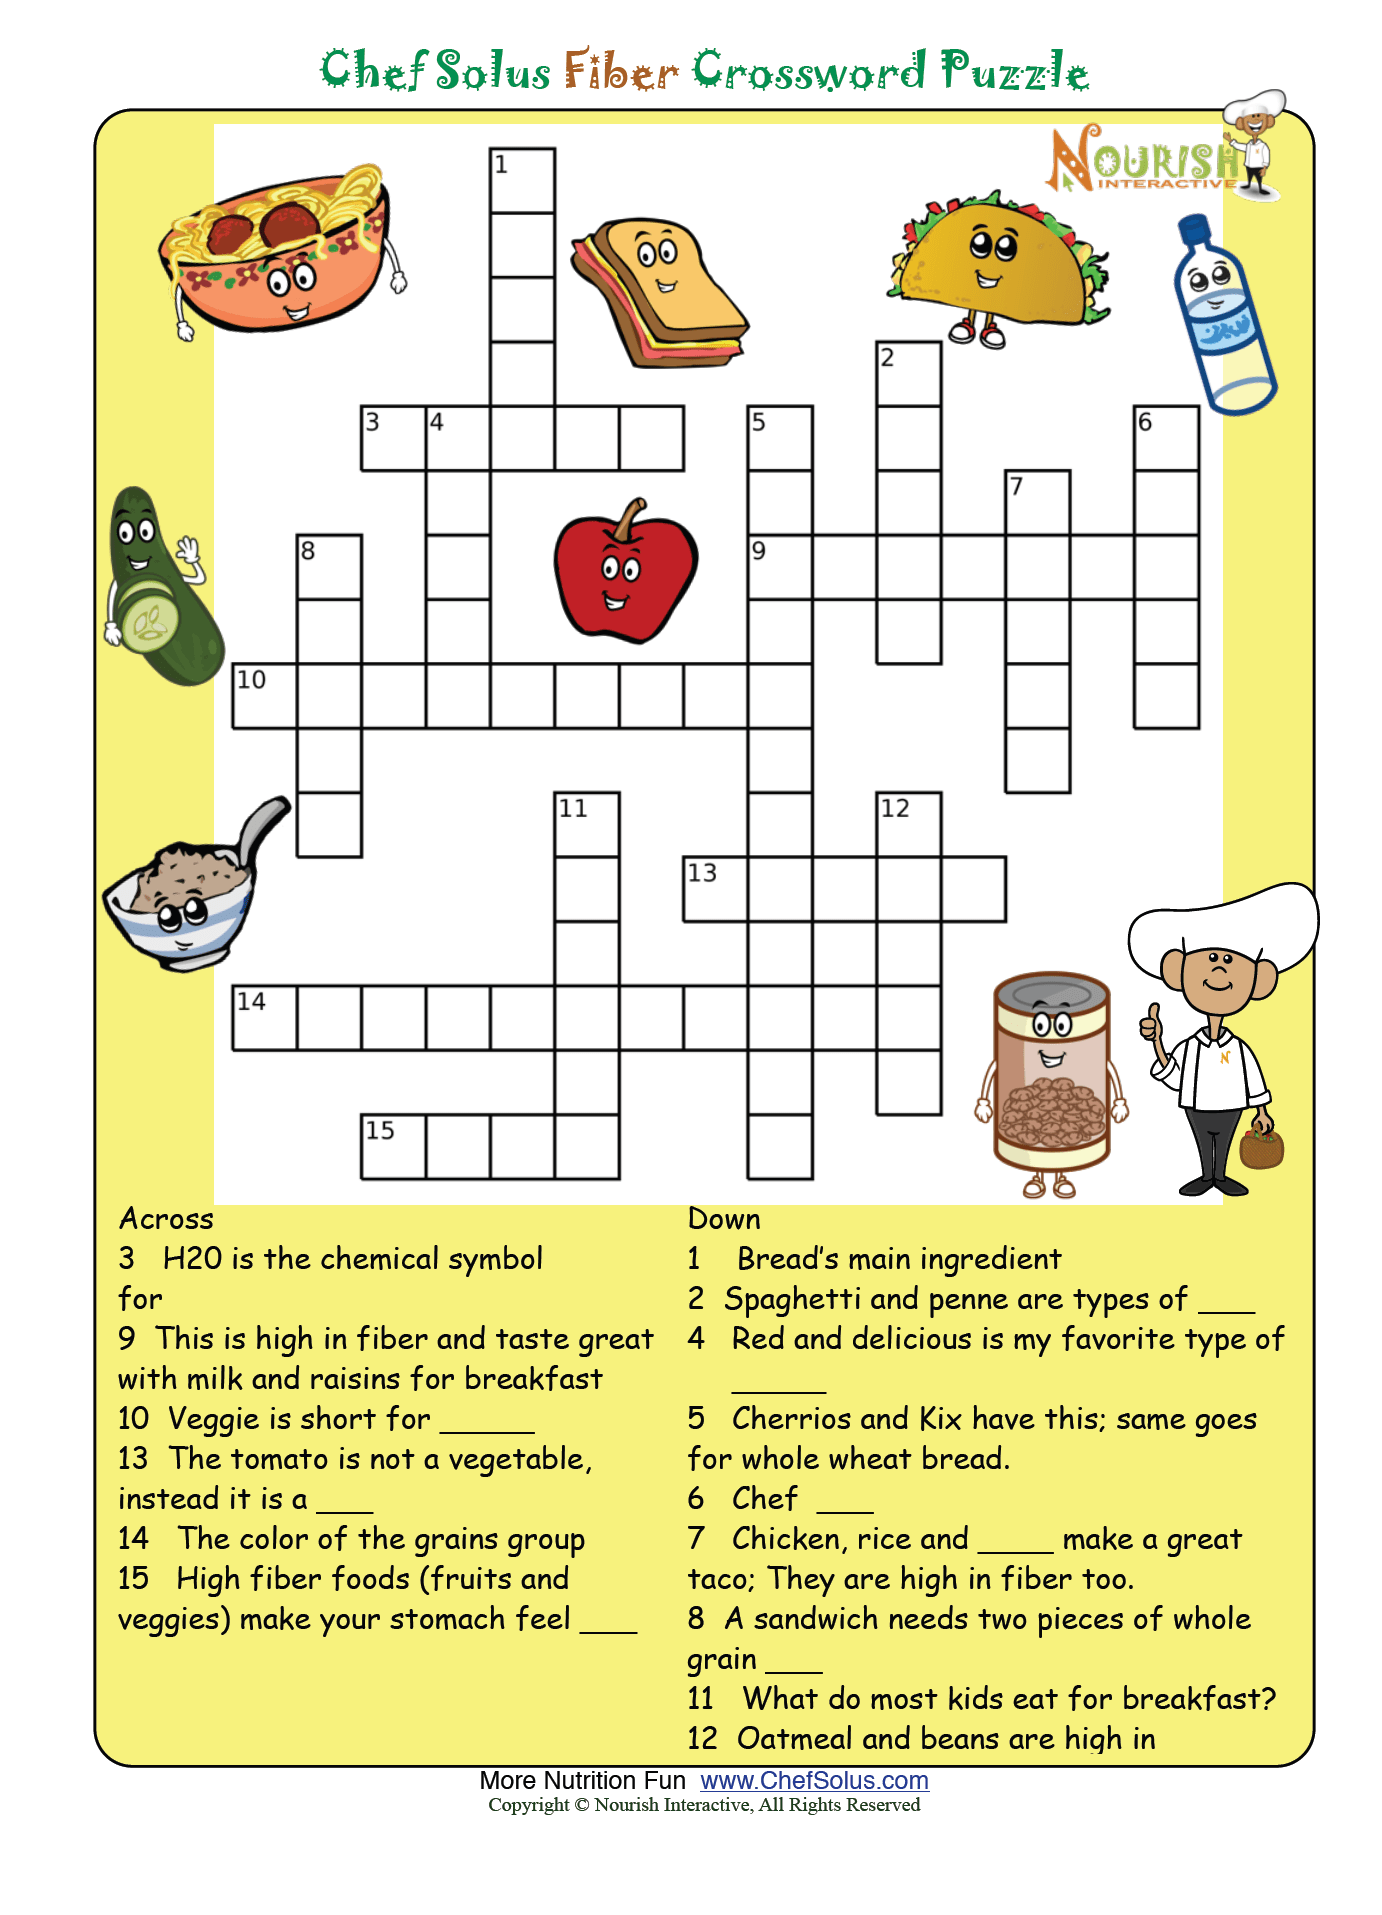 Fiber Puzzle Please Make Sure To Print The Answer Key As Well